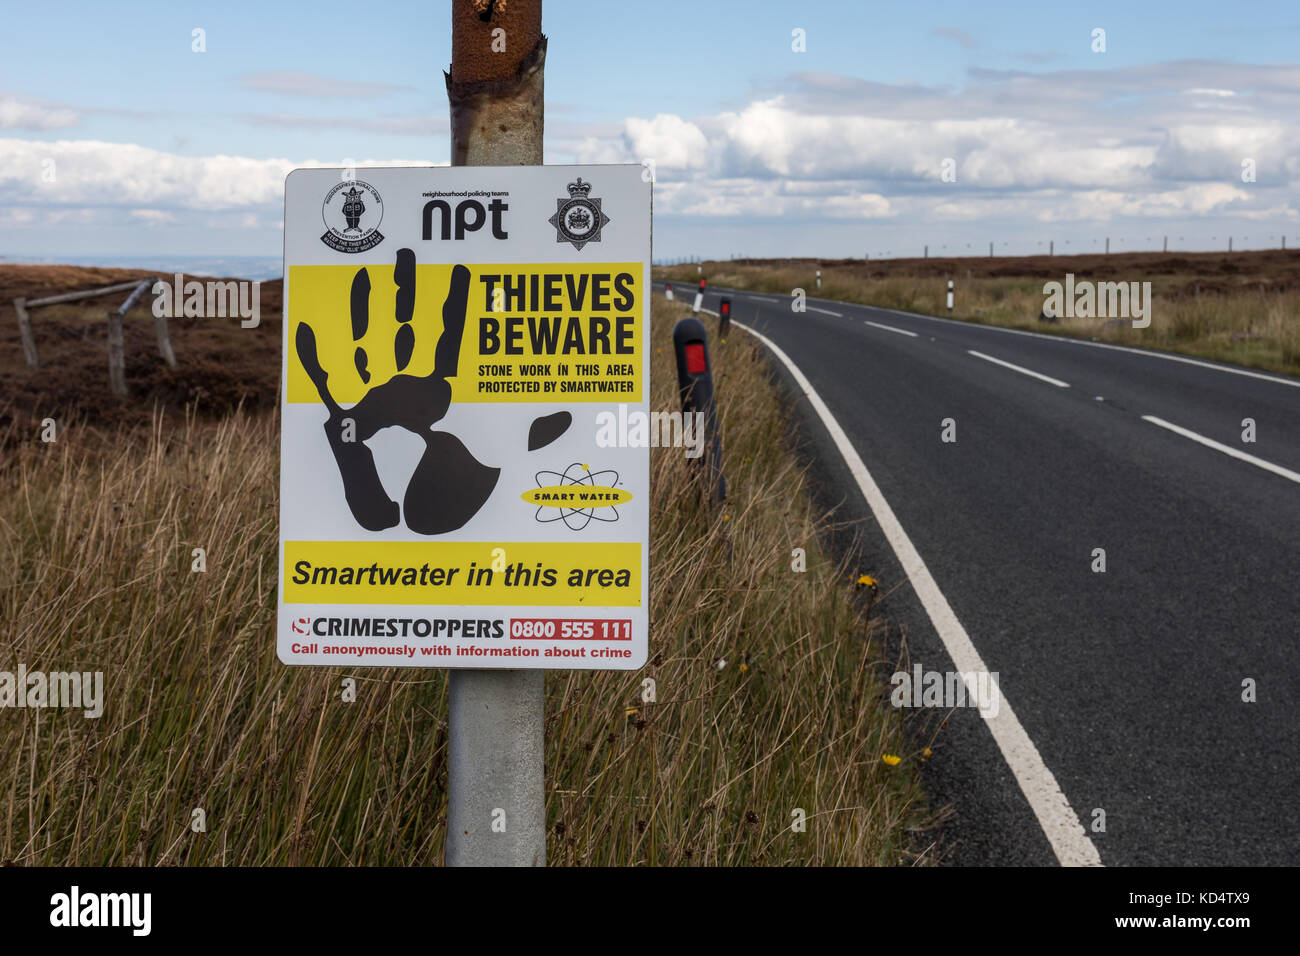 SmartWater Security Thieves Beware roadsign, Holme Moss, UK - Stock Image